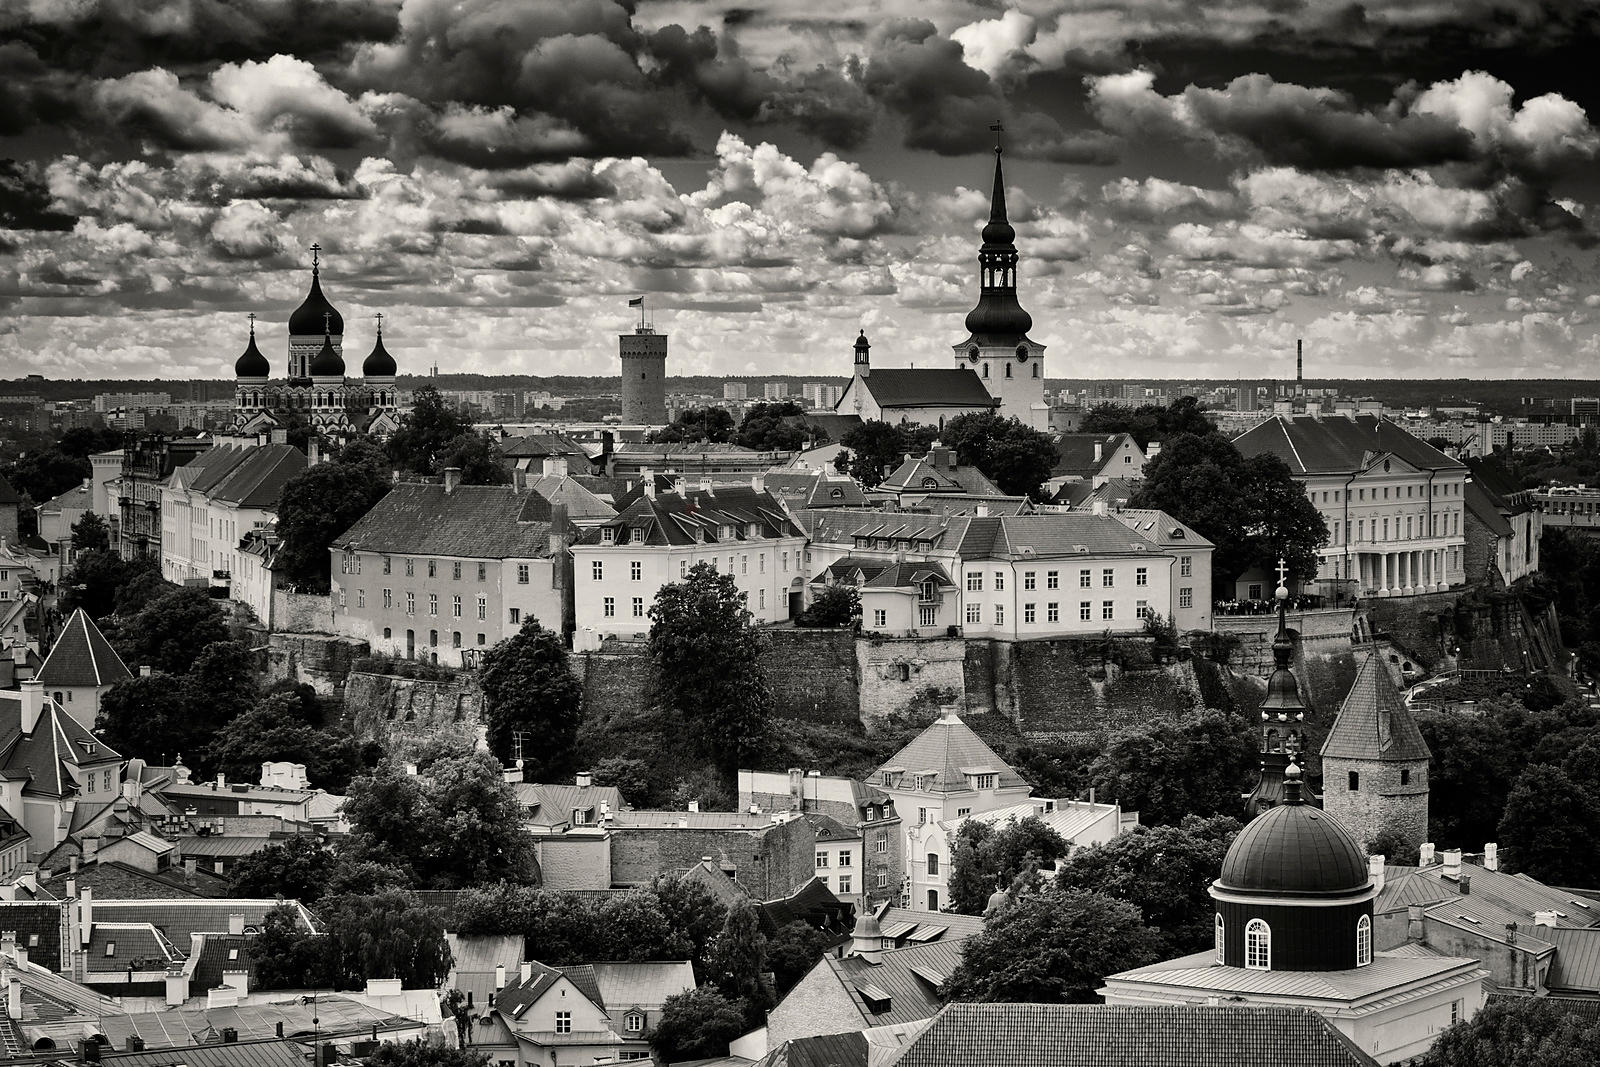 Elevated View of the City of Tallin from St Olav's Church